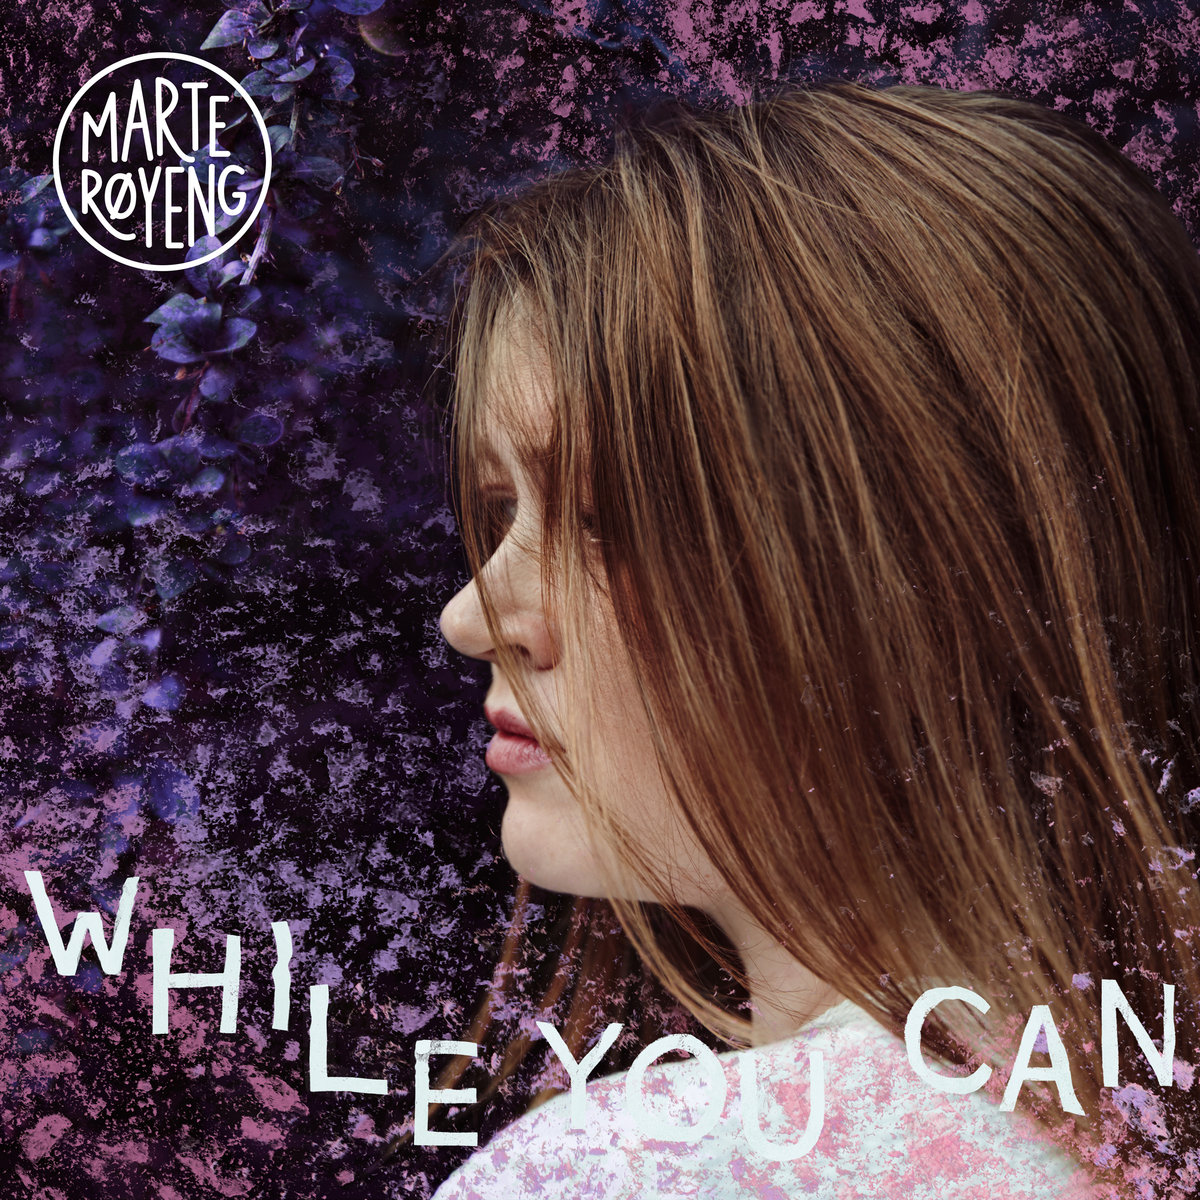 While You Can by Marte Røyeng